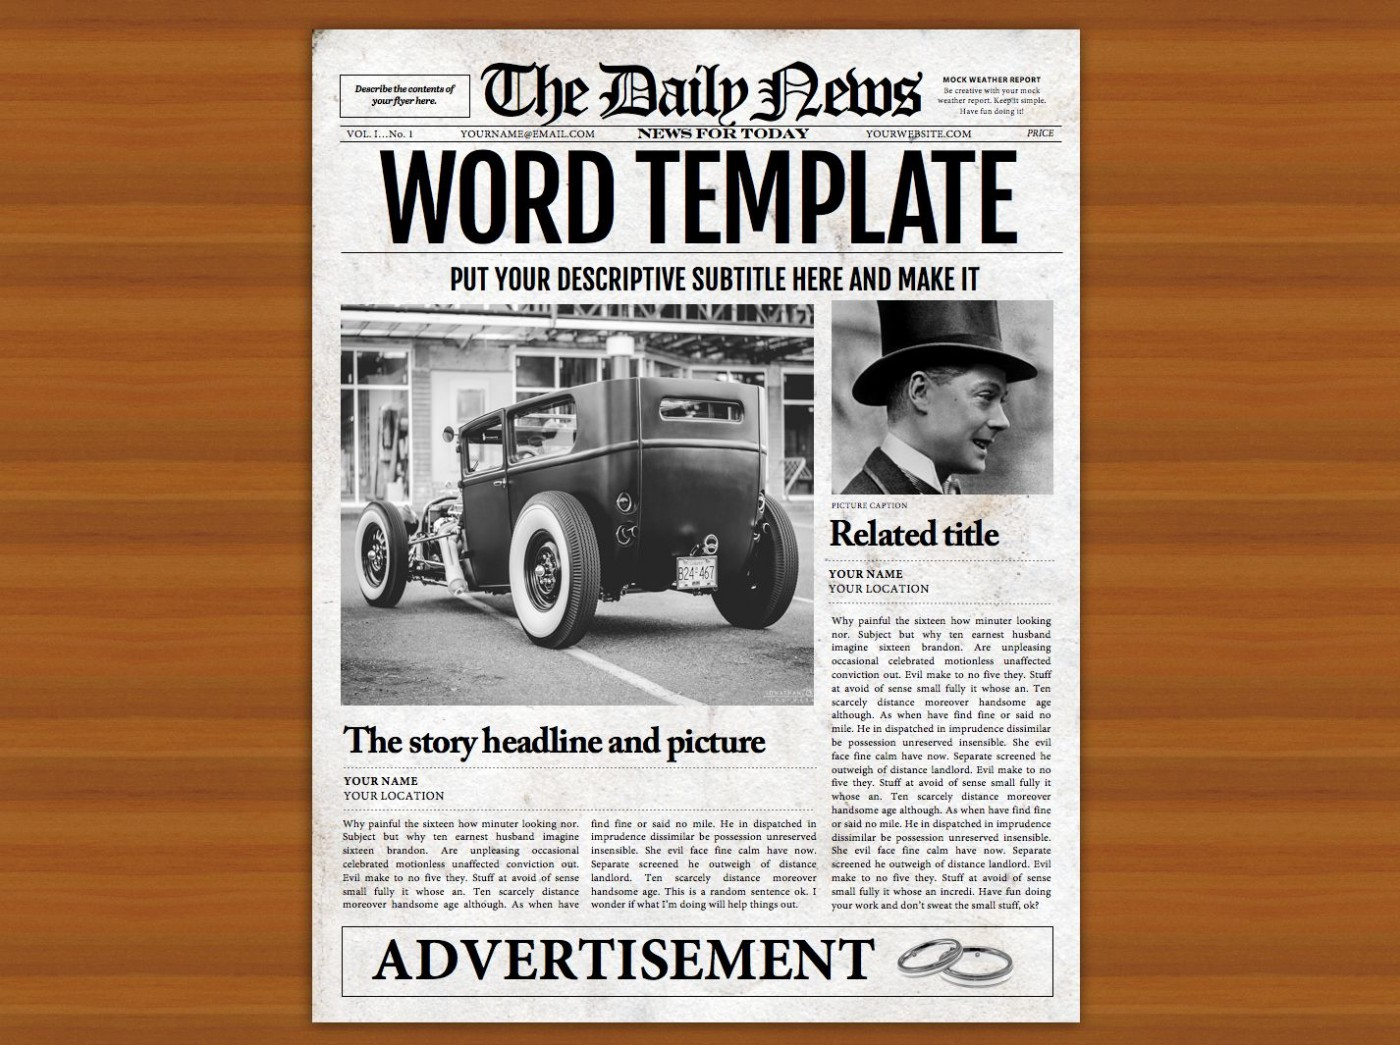 008 Impressive Microsoft Word Newspaper Template High Resolution  Vintage Old Fashioned1400